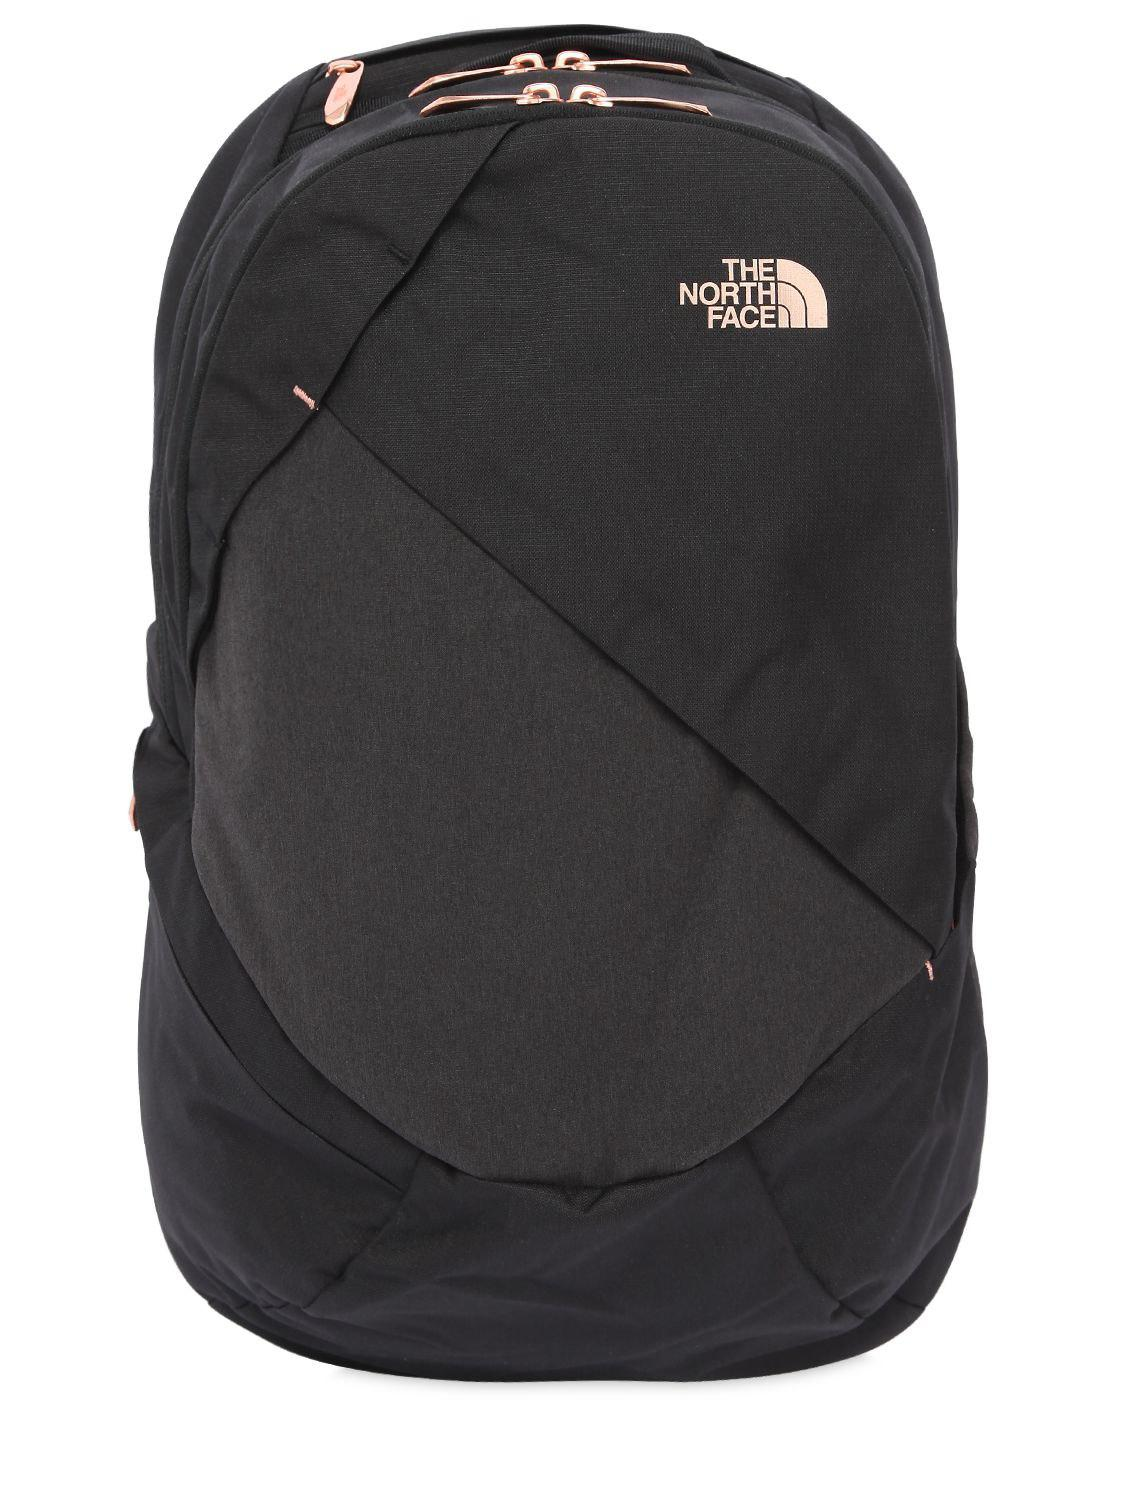 reputable site 5201c 73bf7 North Face Isabella Backpack Black